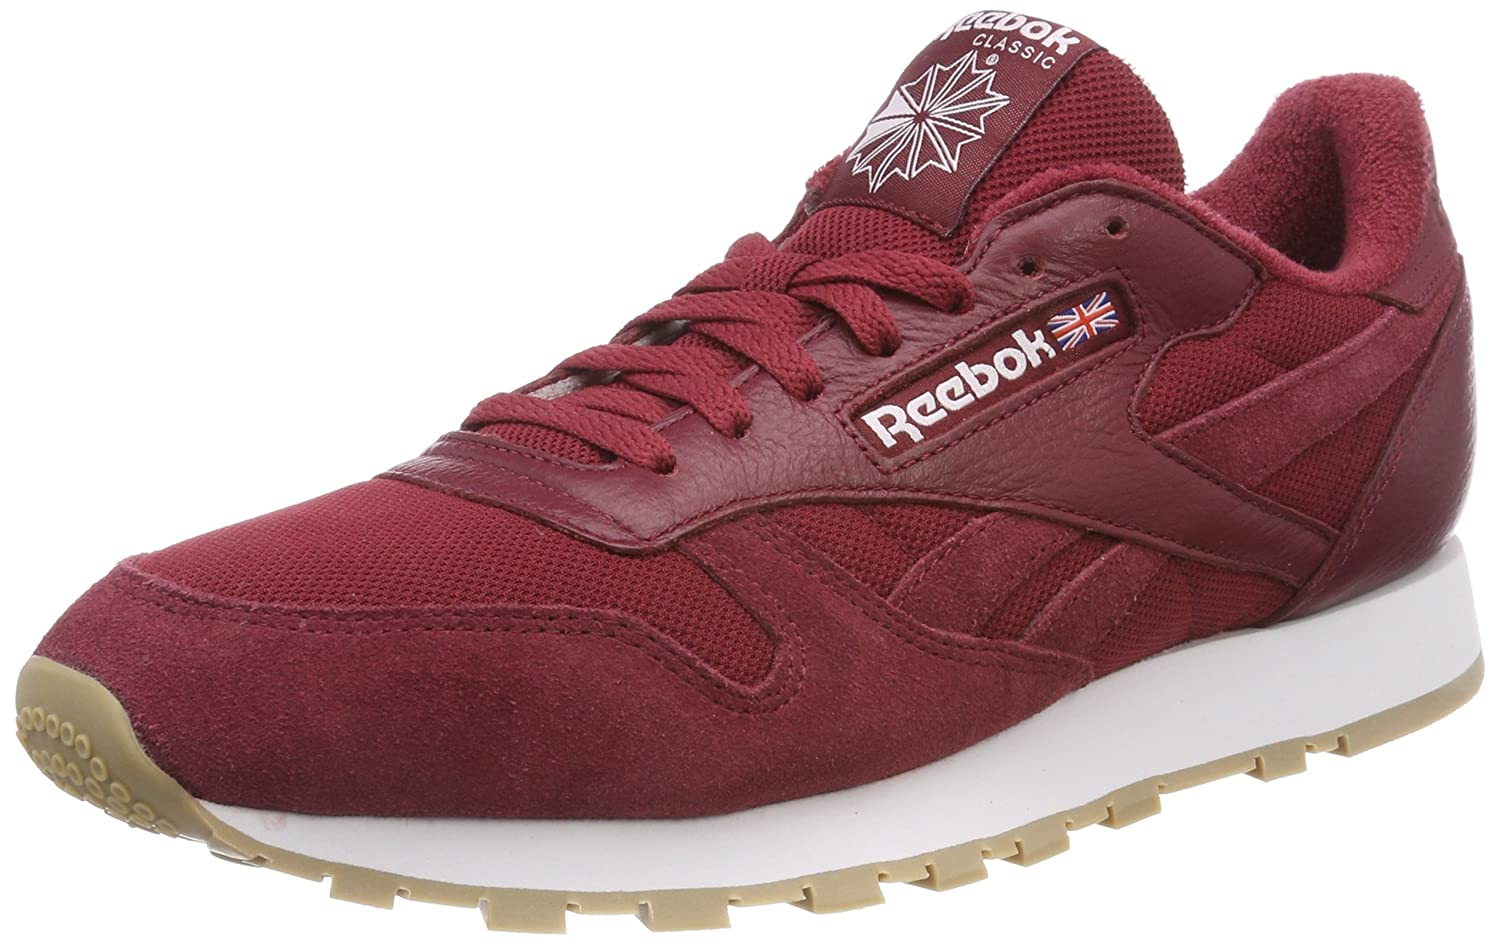 c4c64d7b2f1b Reebok Men s Cl Leather Mu Fitness Shoes